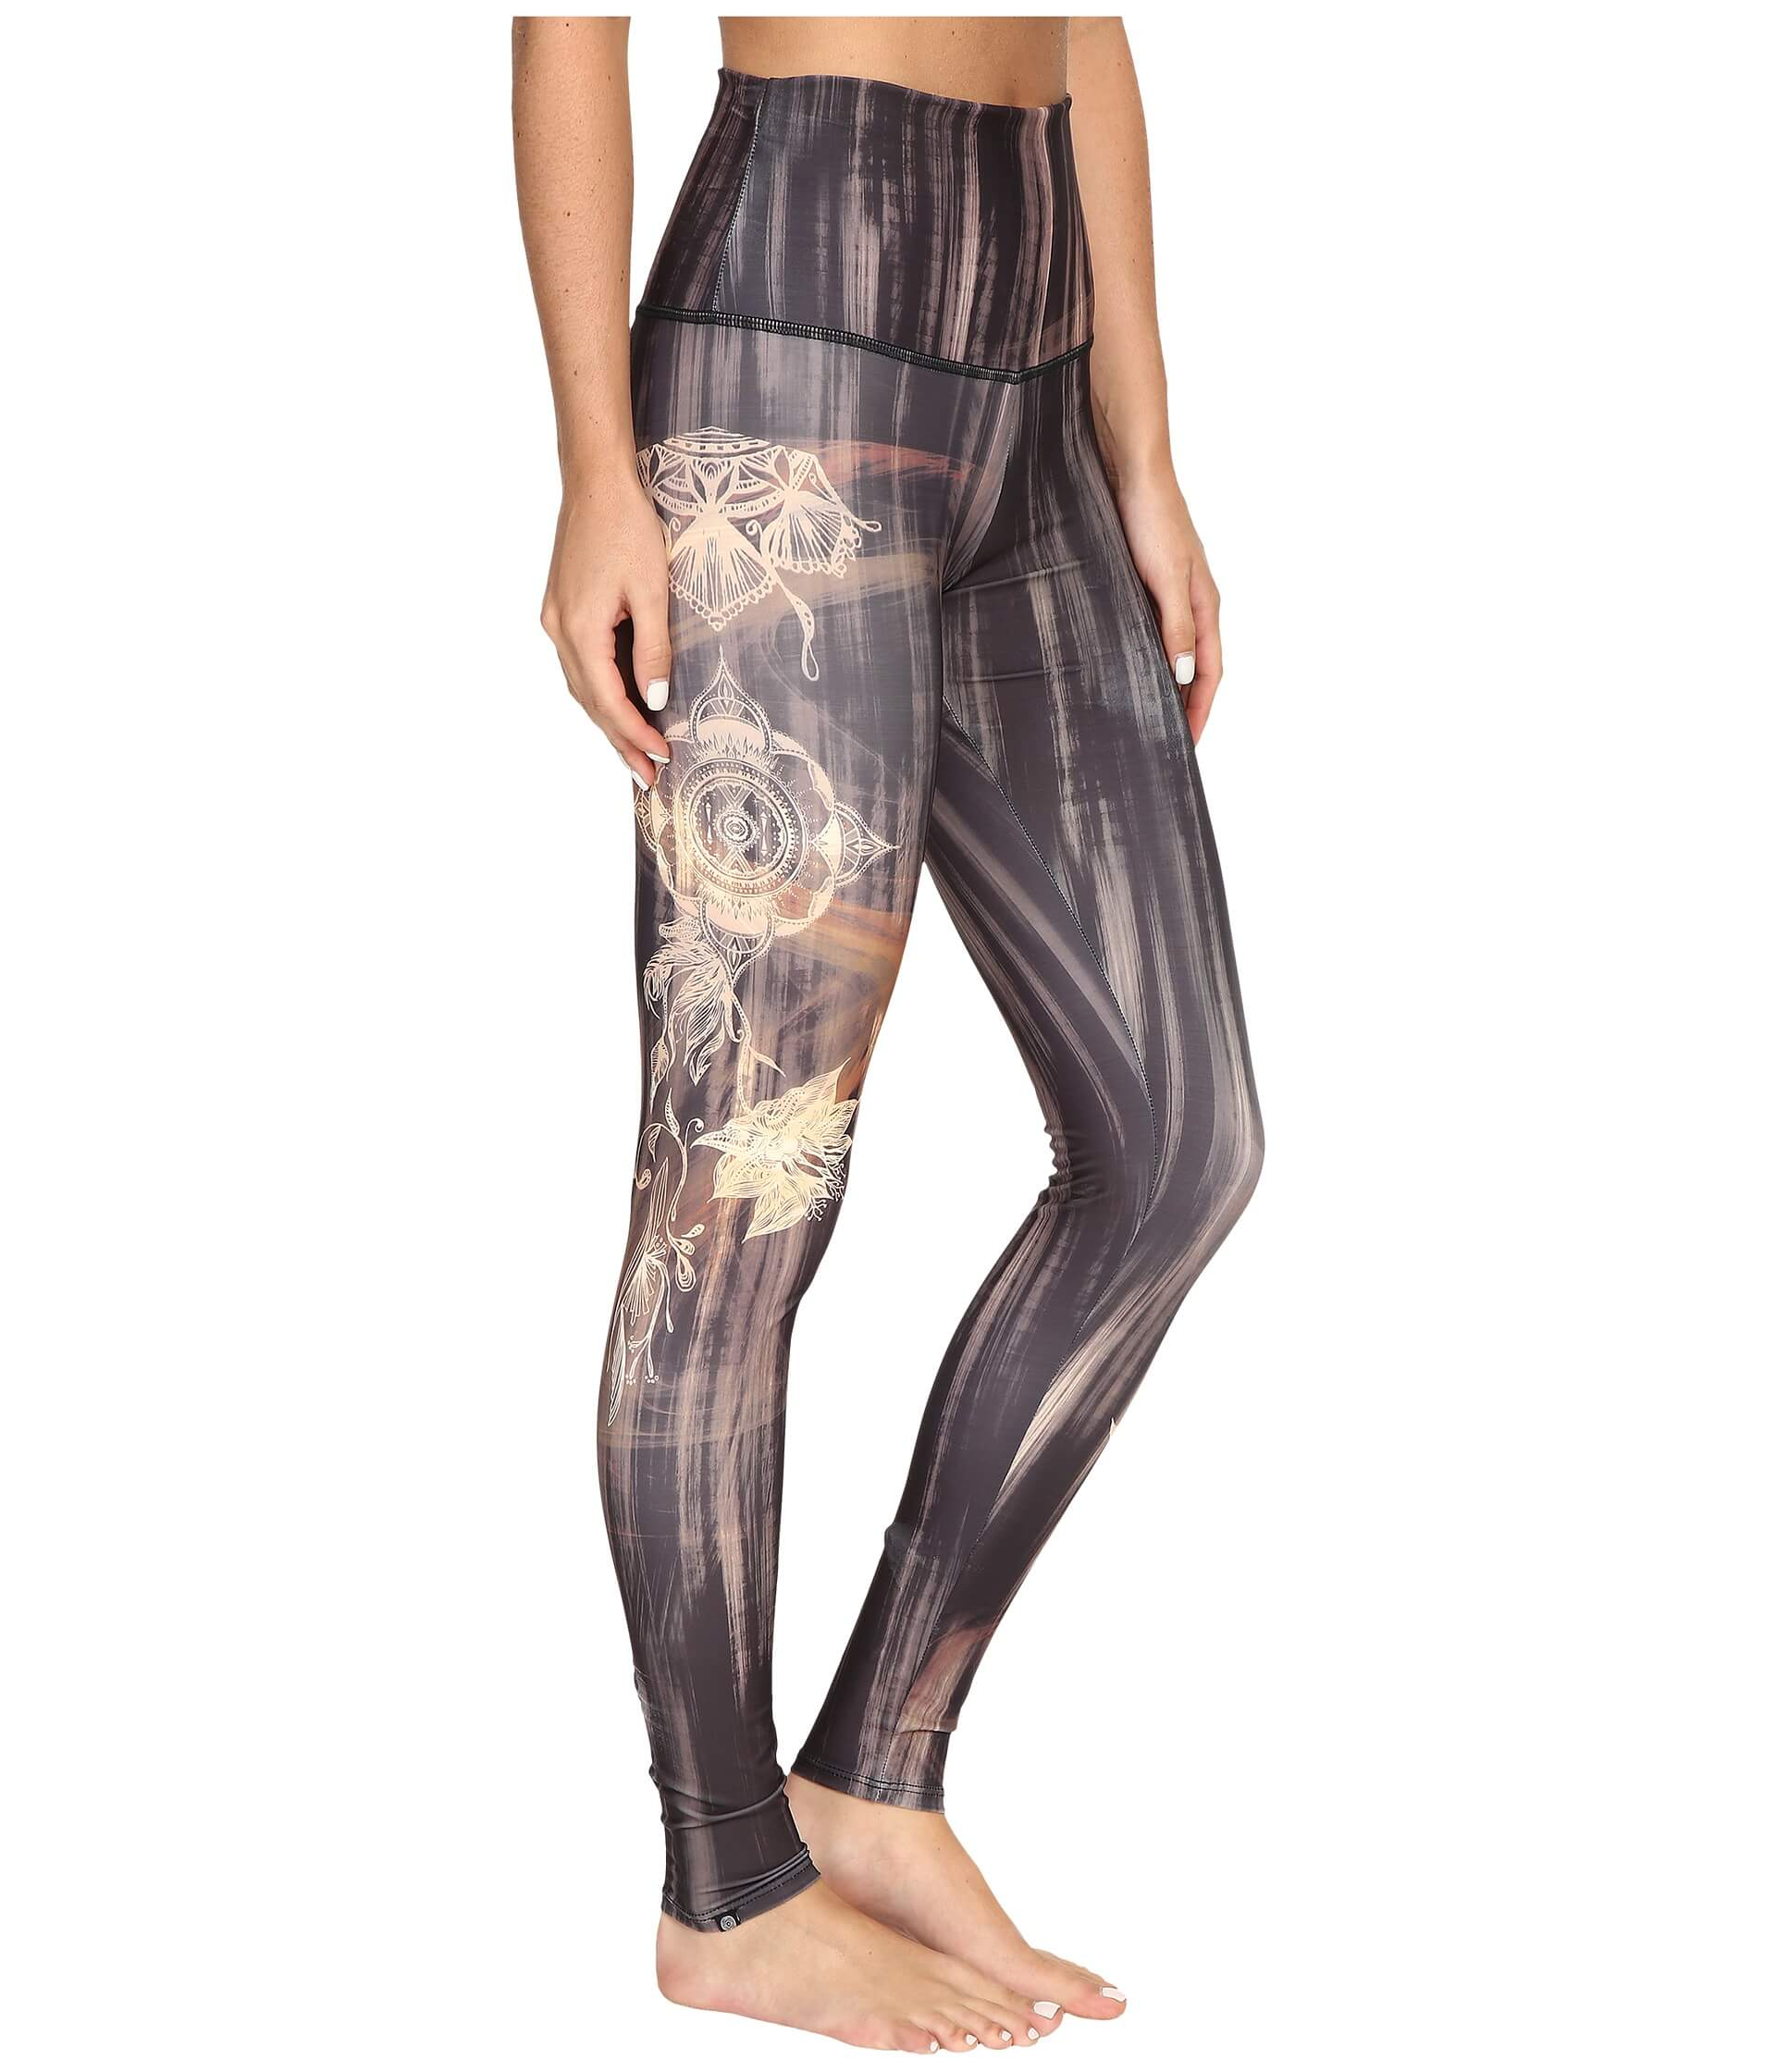 Onzie Henna High-Rise Graphic Leggings